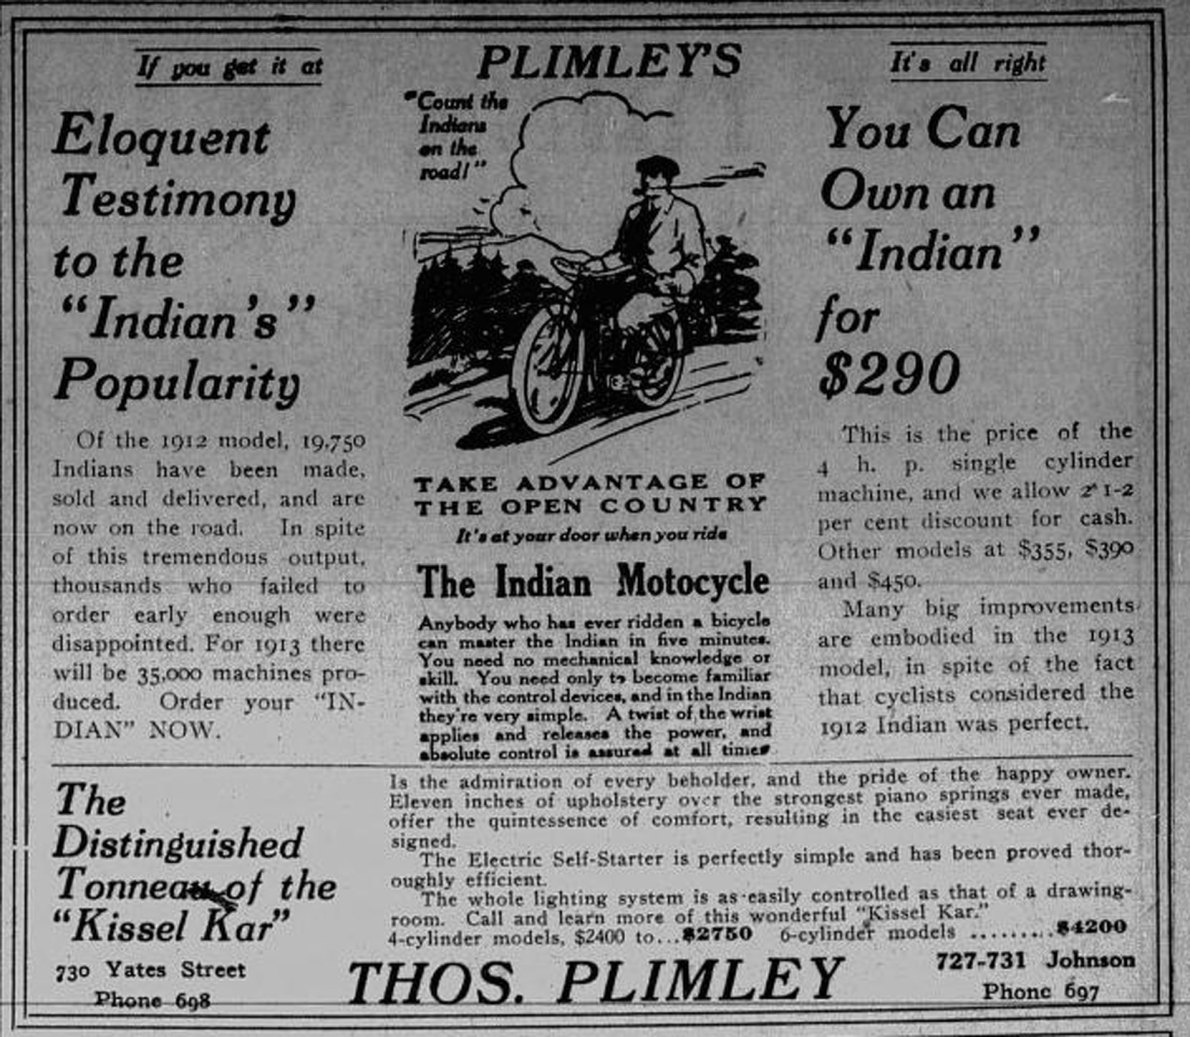 1913 advertisement for Indian motorcycles, sold by Thomas Plimely Ltd., 727-731 Johnson Street and 730 Yates Street. (Victoria Online Sightseeing Tours collection)